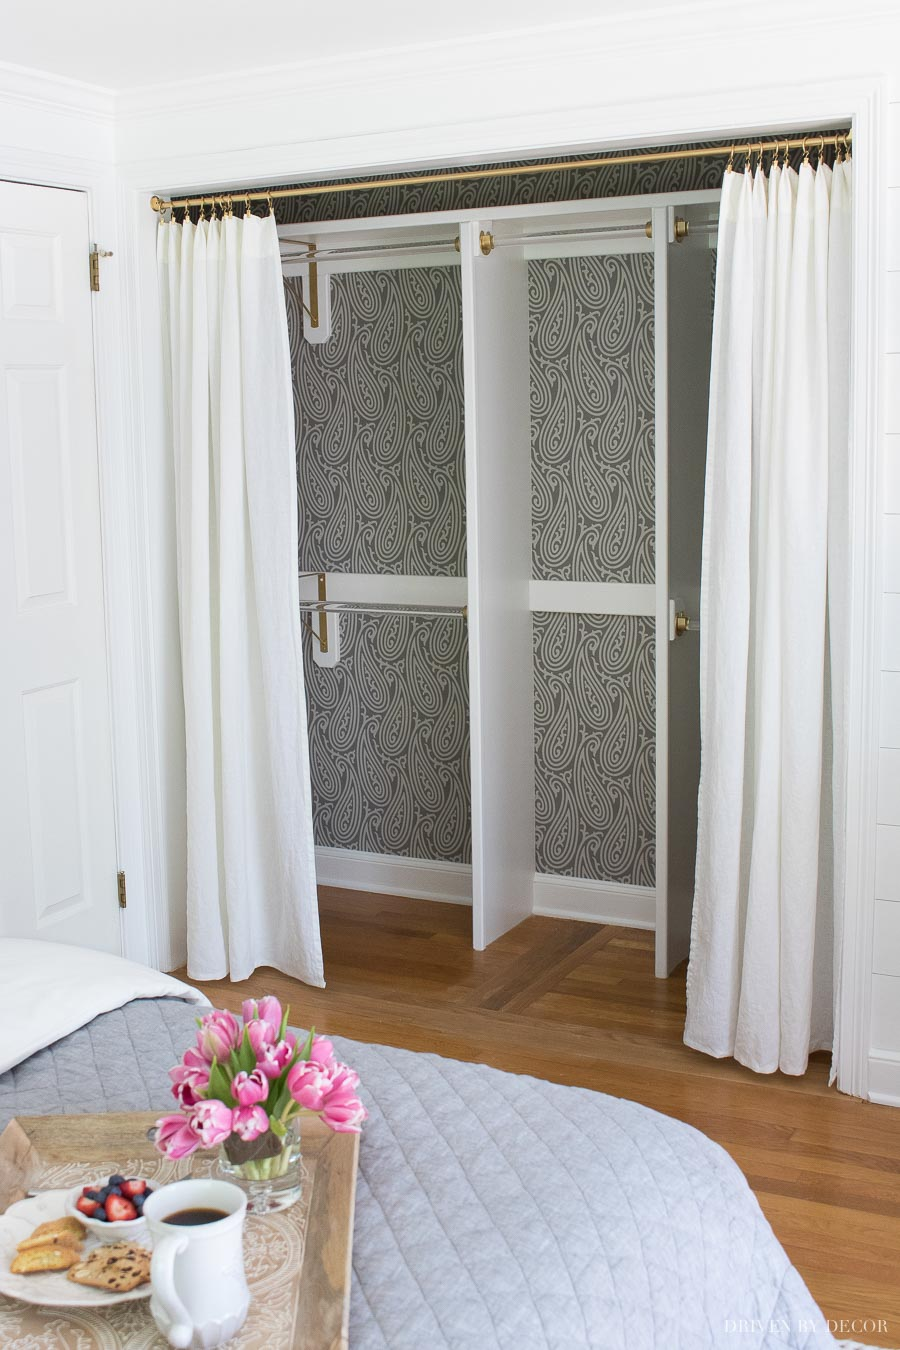 Closet Door Ideas: 23 Unique Ways to Dress Up Bedroom Closet Doors